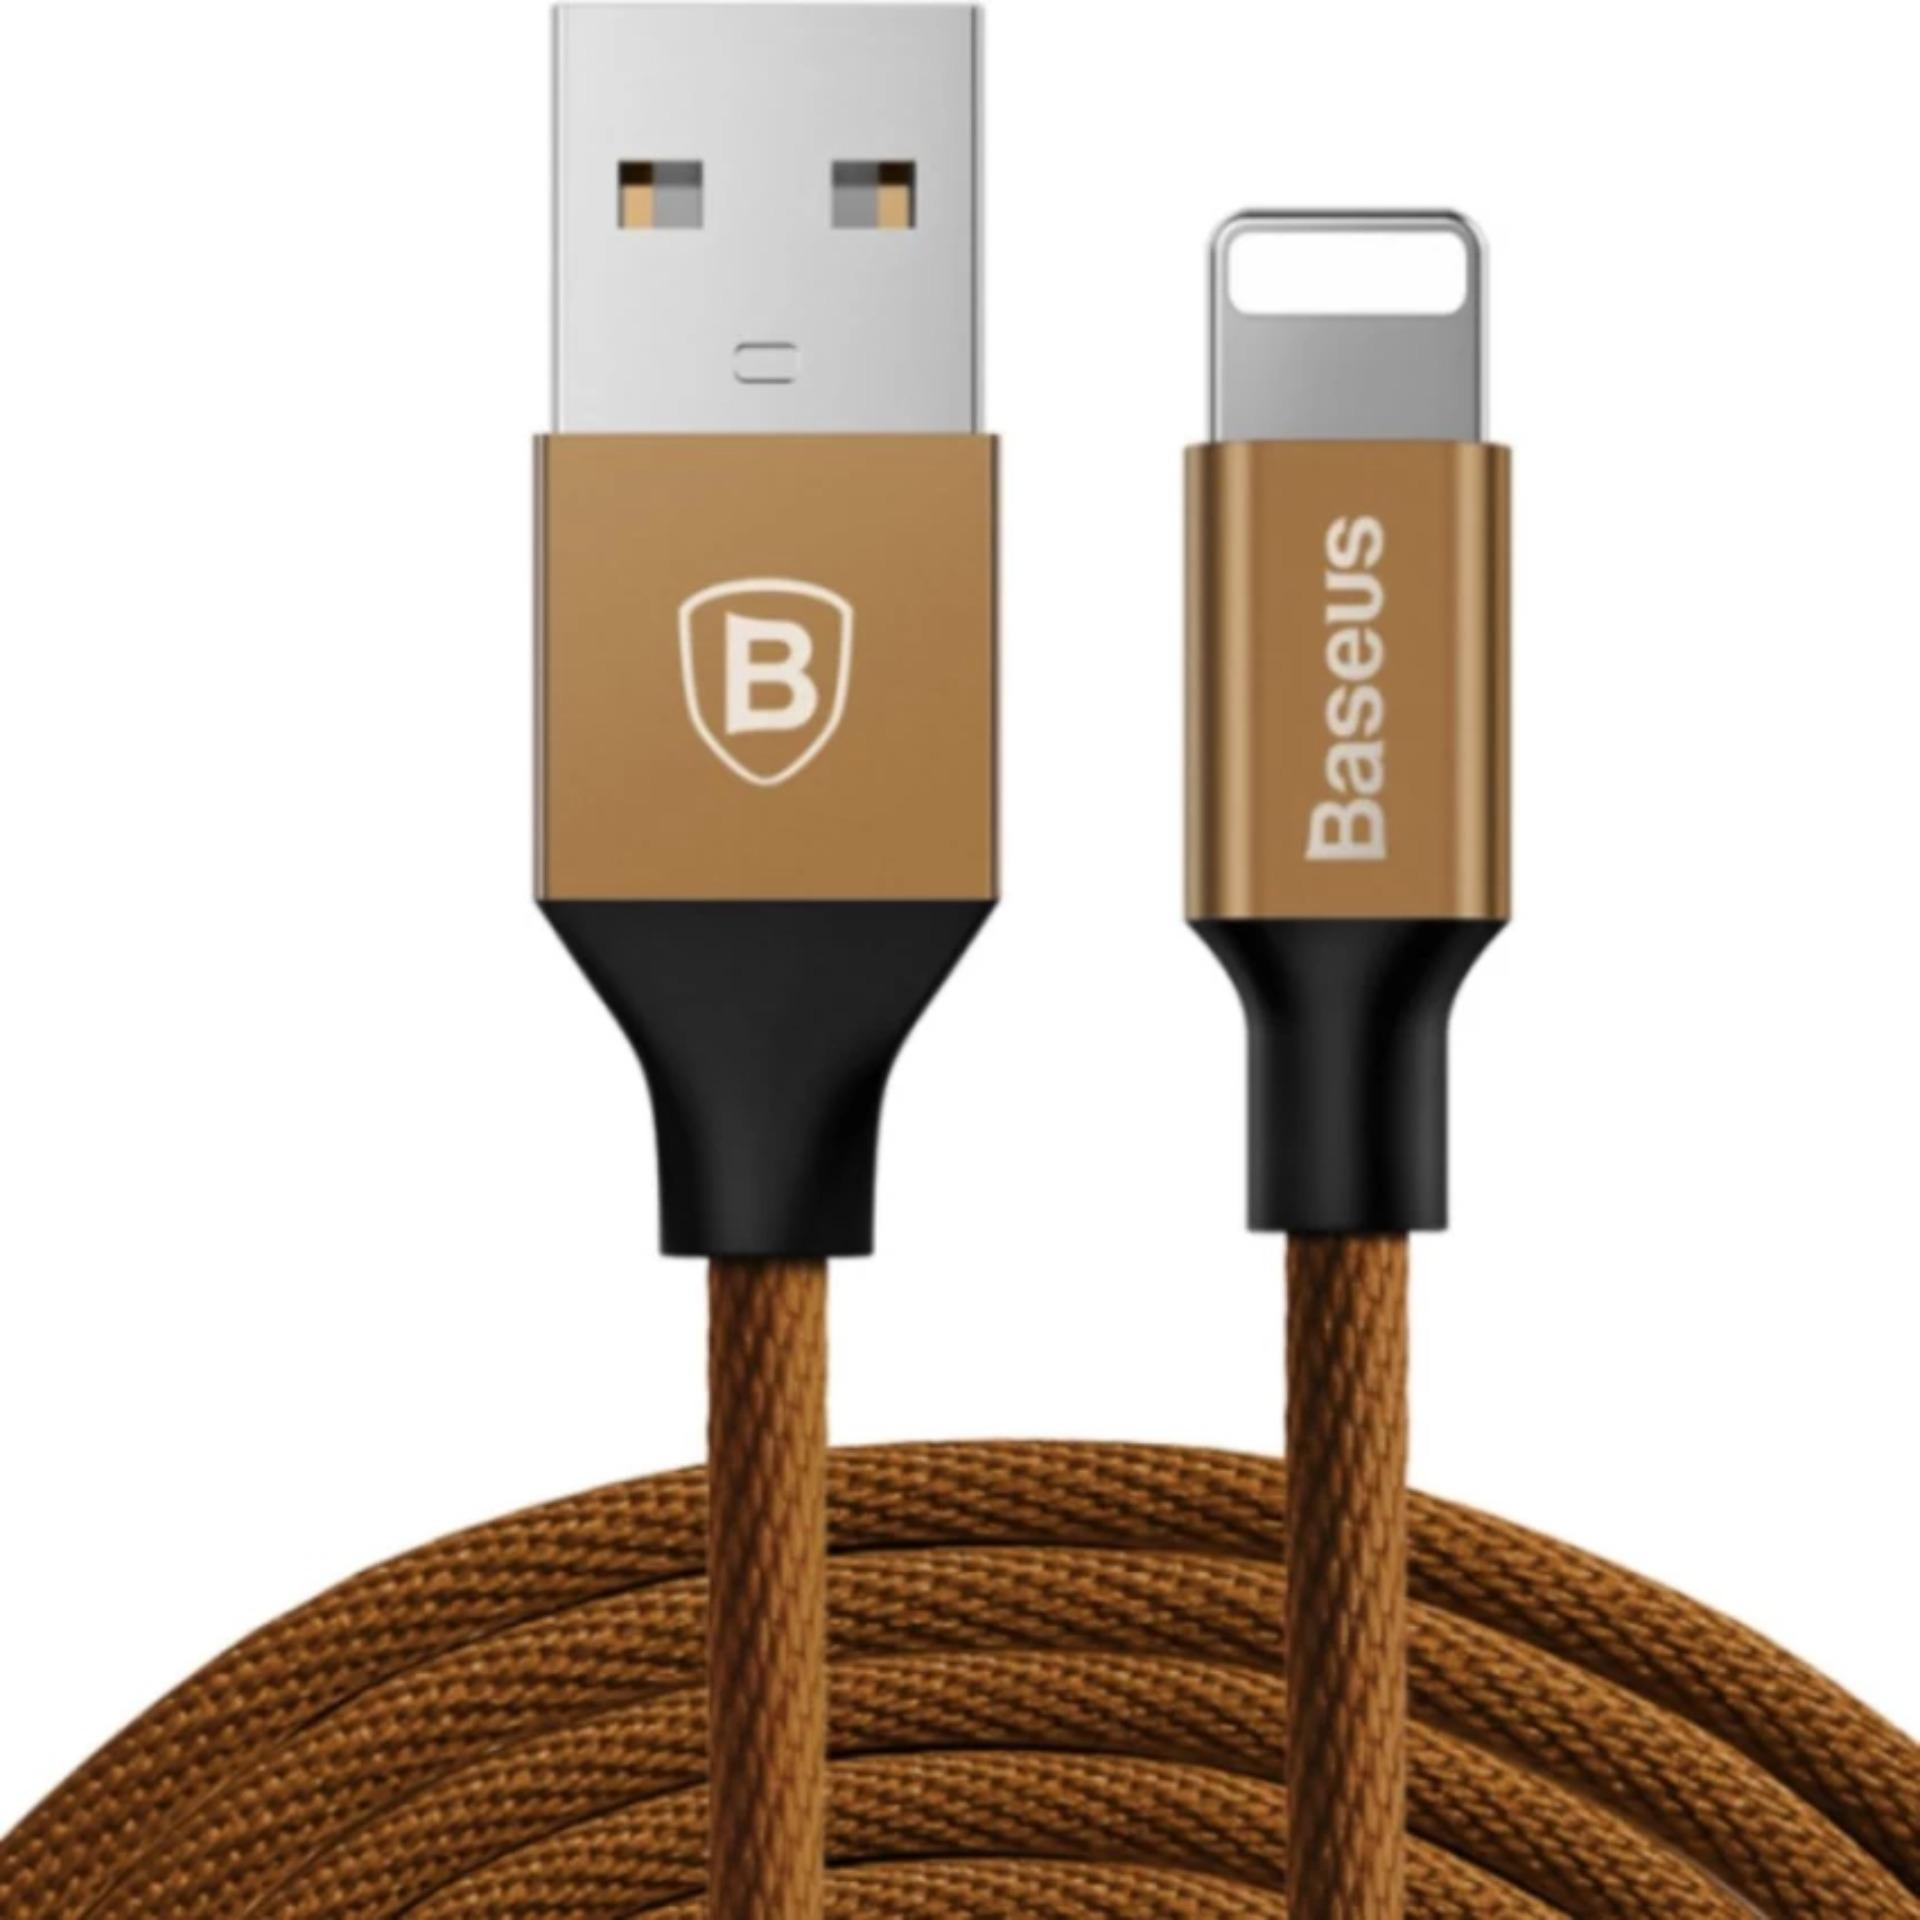 Tm Gi Tt Cp Sc Baseus Yiven Cable Lightning Cho Iphone 55s6 Rapid Series 3 In 1 Micro Usb Type C 3a 12m 55s66s 7